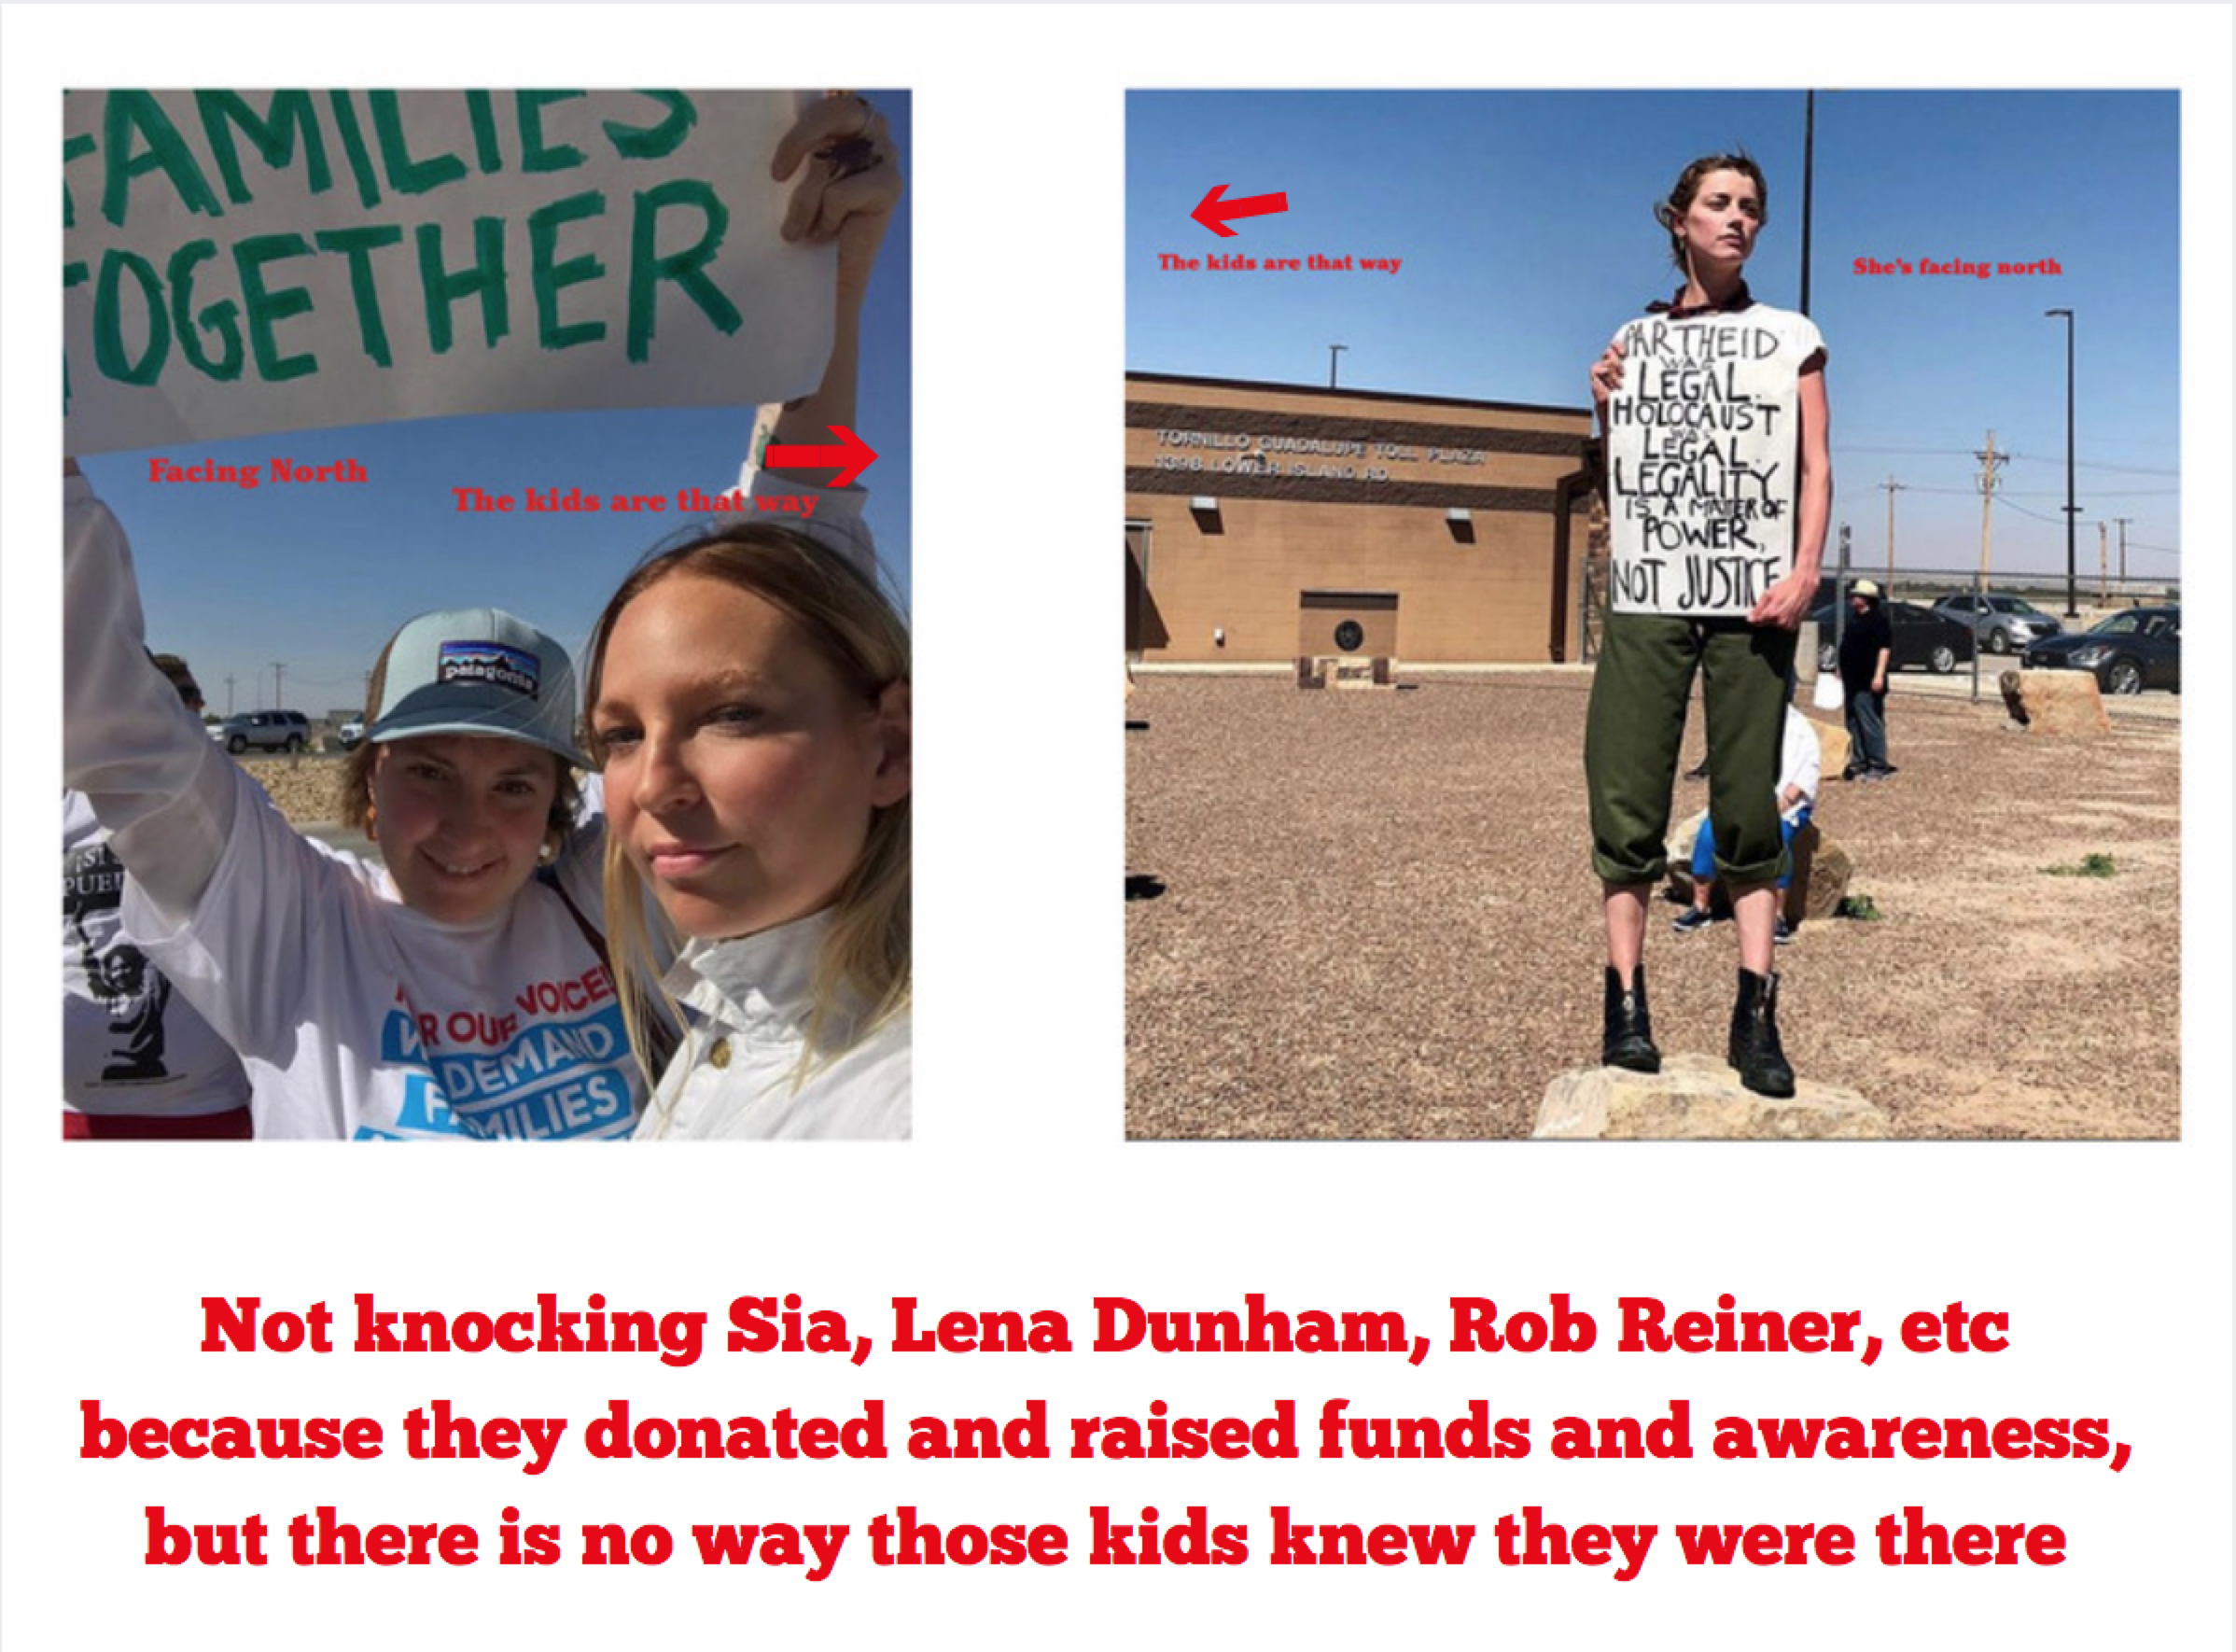 Amber Heard is seen in the second photo. She's from Austin and she used to be a lesbian before she married Johnny Depp and dated Elon Musk. And her protest outfit is PERFECT. Congrats to her stylist. Except she has her back to the kids and her sign is in English. But again, not knocking anybody.